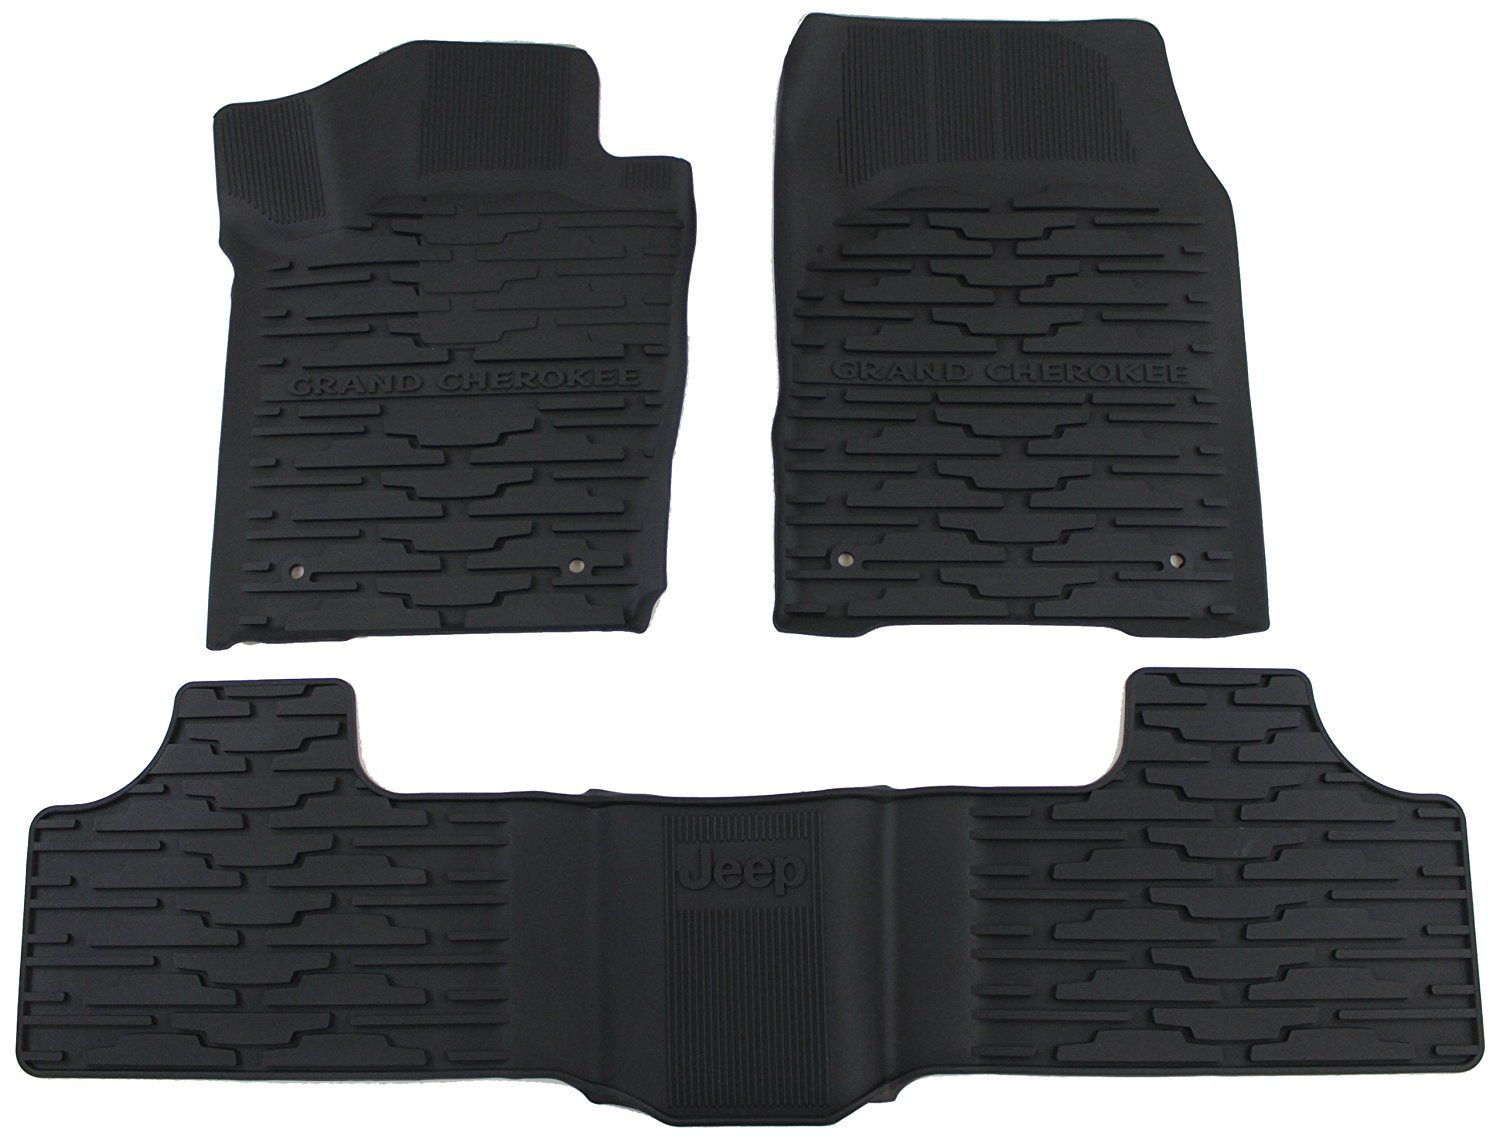 Mopar Jeep Grand Cherokee - Black All-Weather Floor Mat - Mopar (82213686)